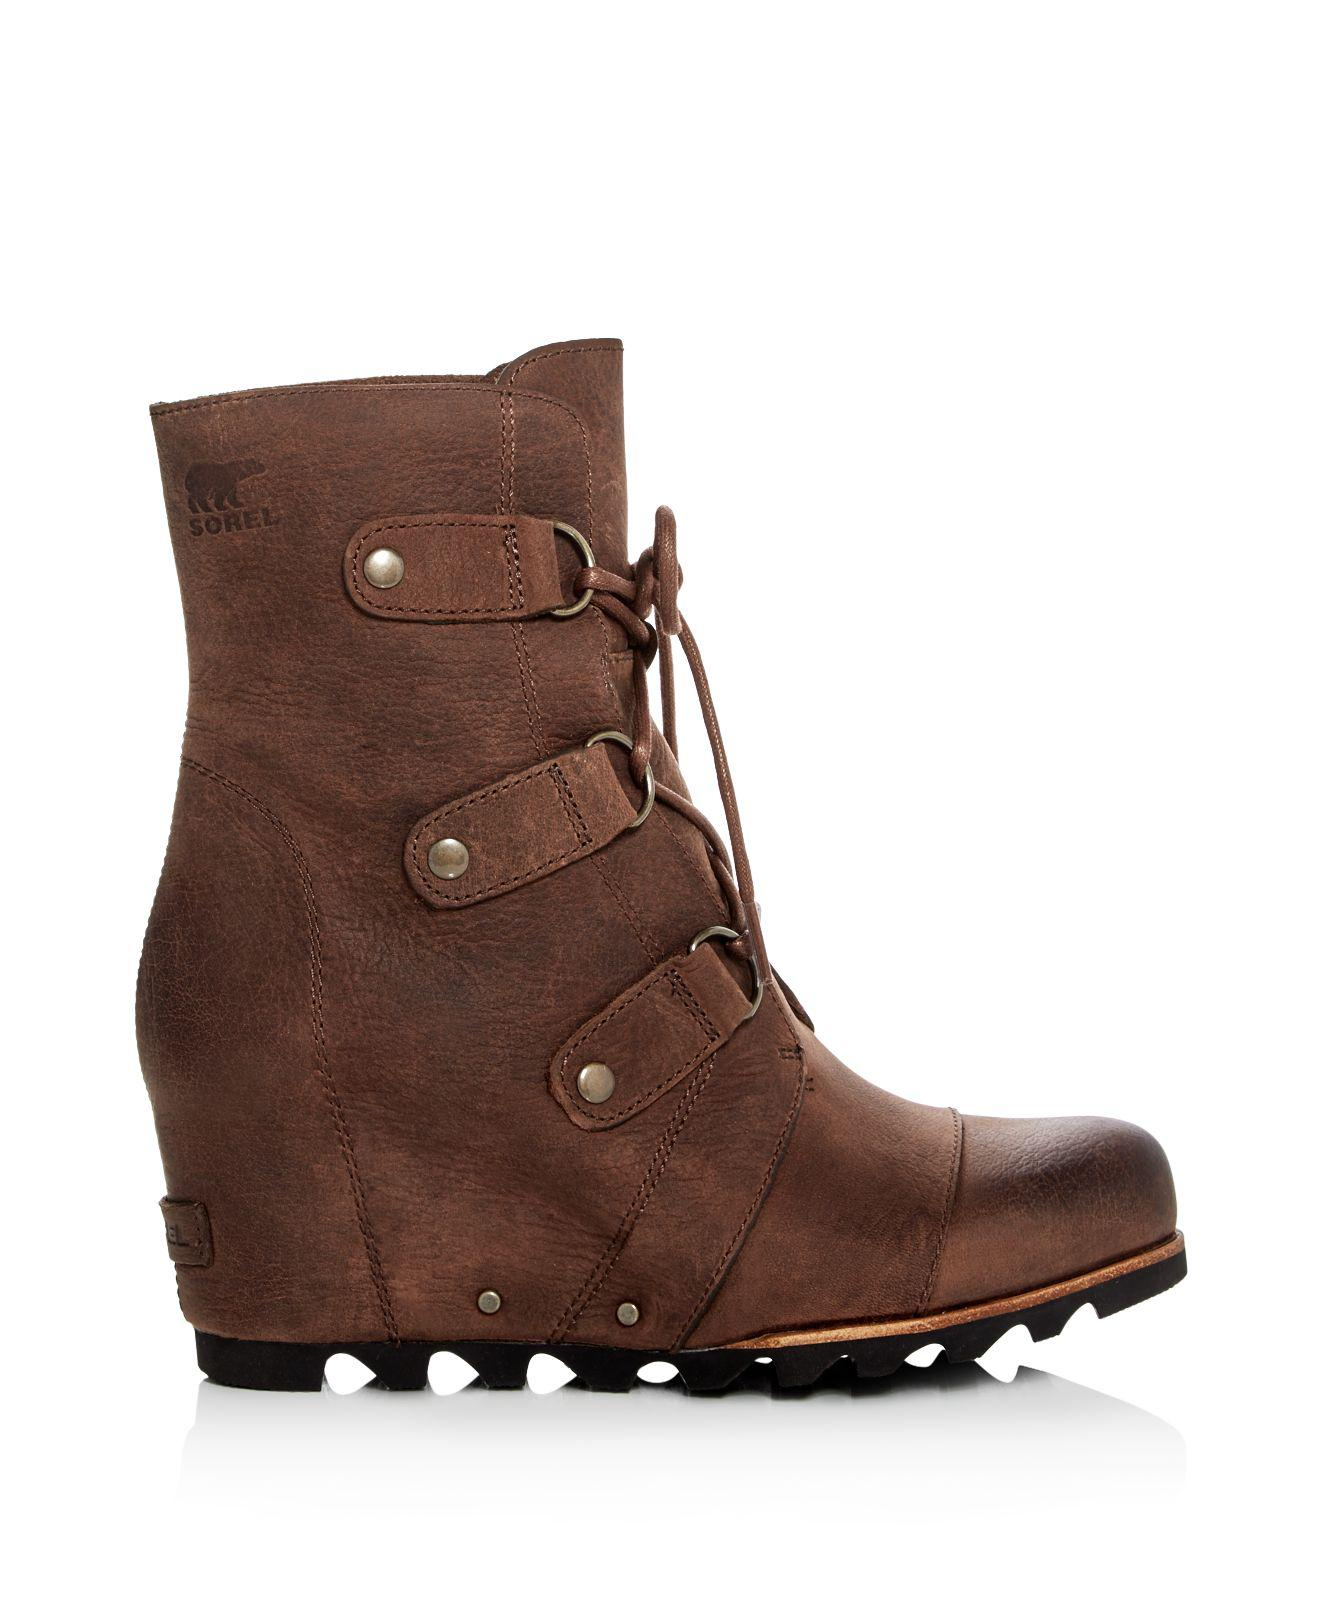 Sorel Leather Joan Of Arctic Lace Up Wedge Booties in Tobacco (Brown)